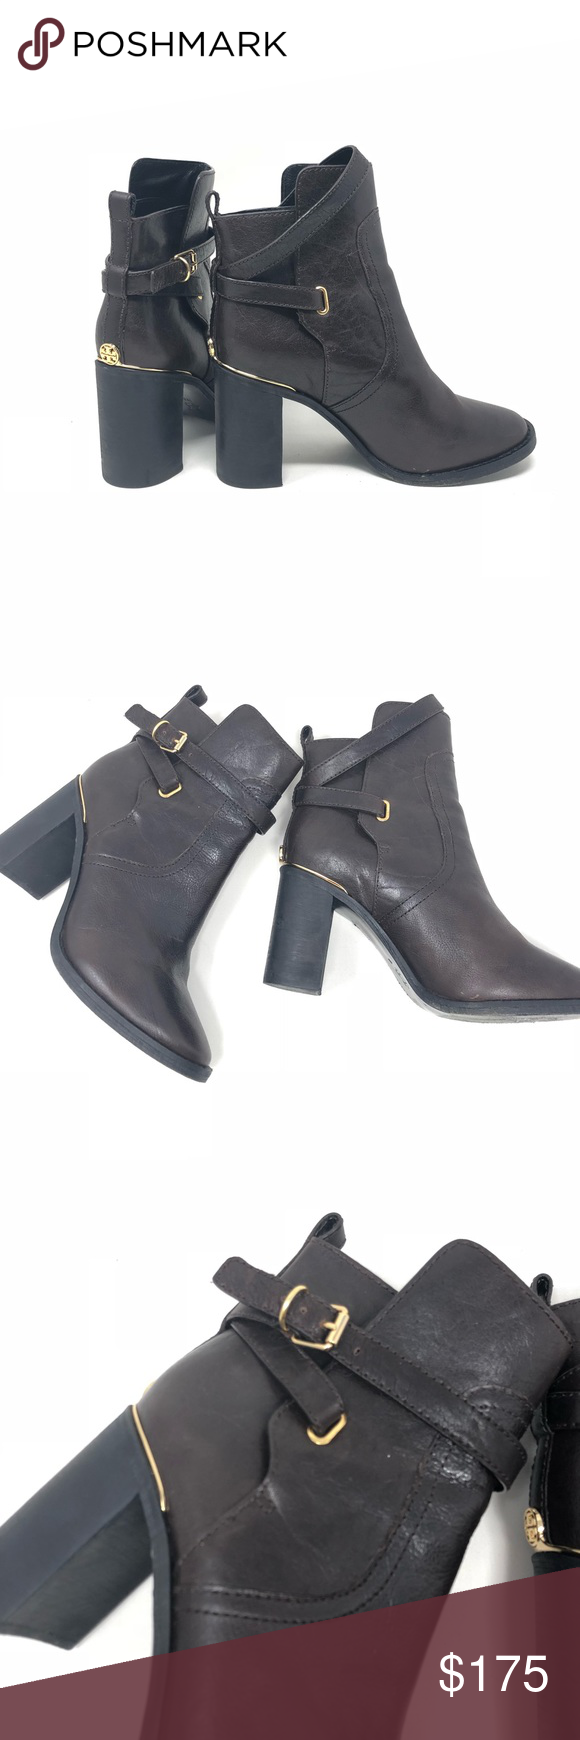 8062bc103f34a6 Tory Burch Brown Leather Ankle Booties Boots 7 BRAND  Tory Burch SIZE  7  CONDITION